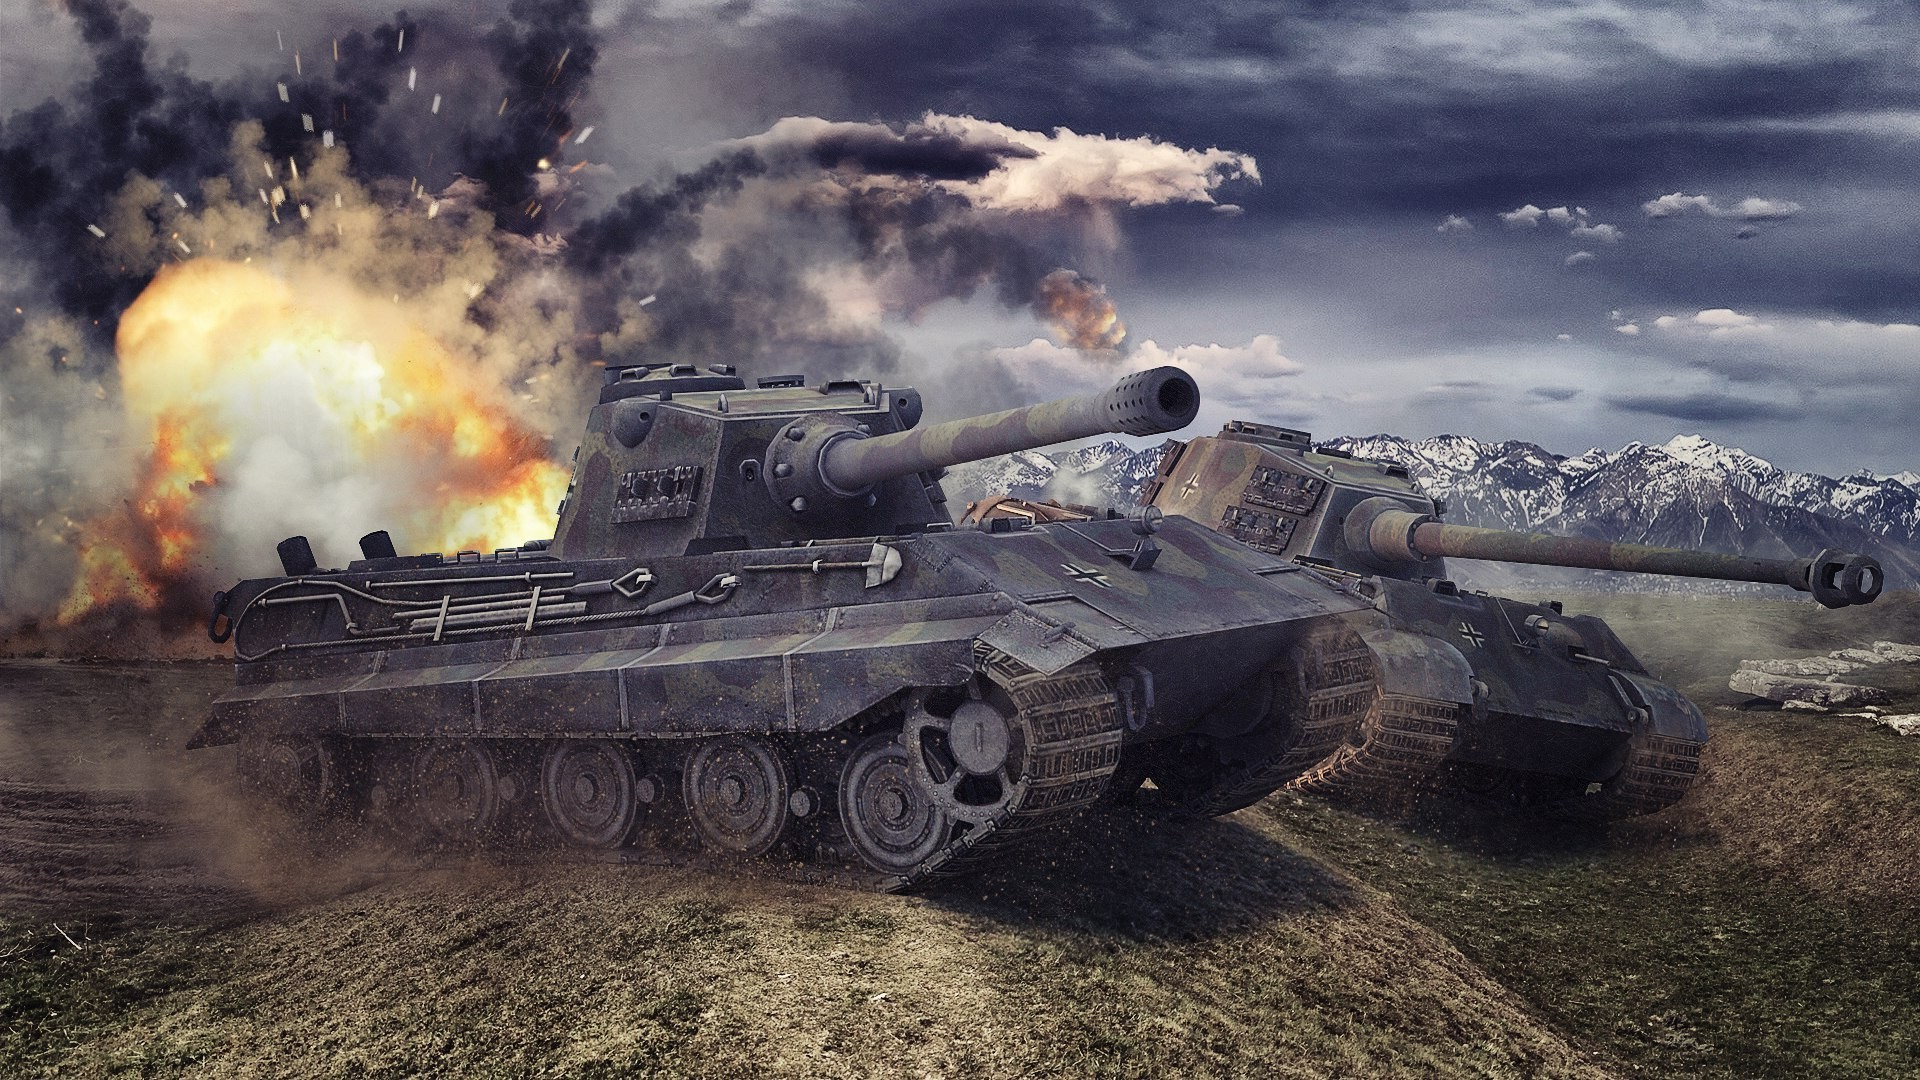 King Tiger Tank Wallpaper 74 Images